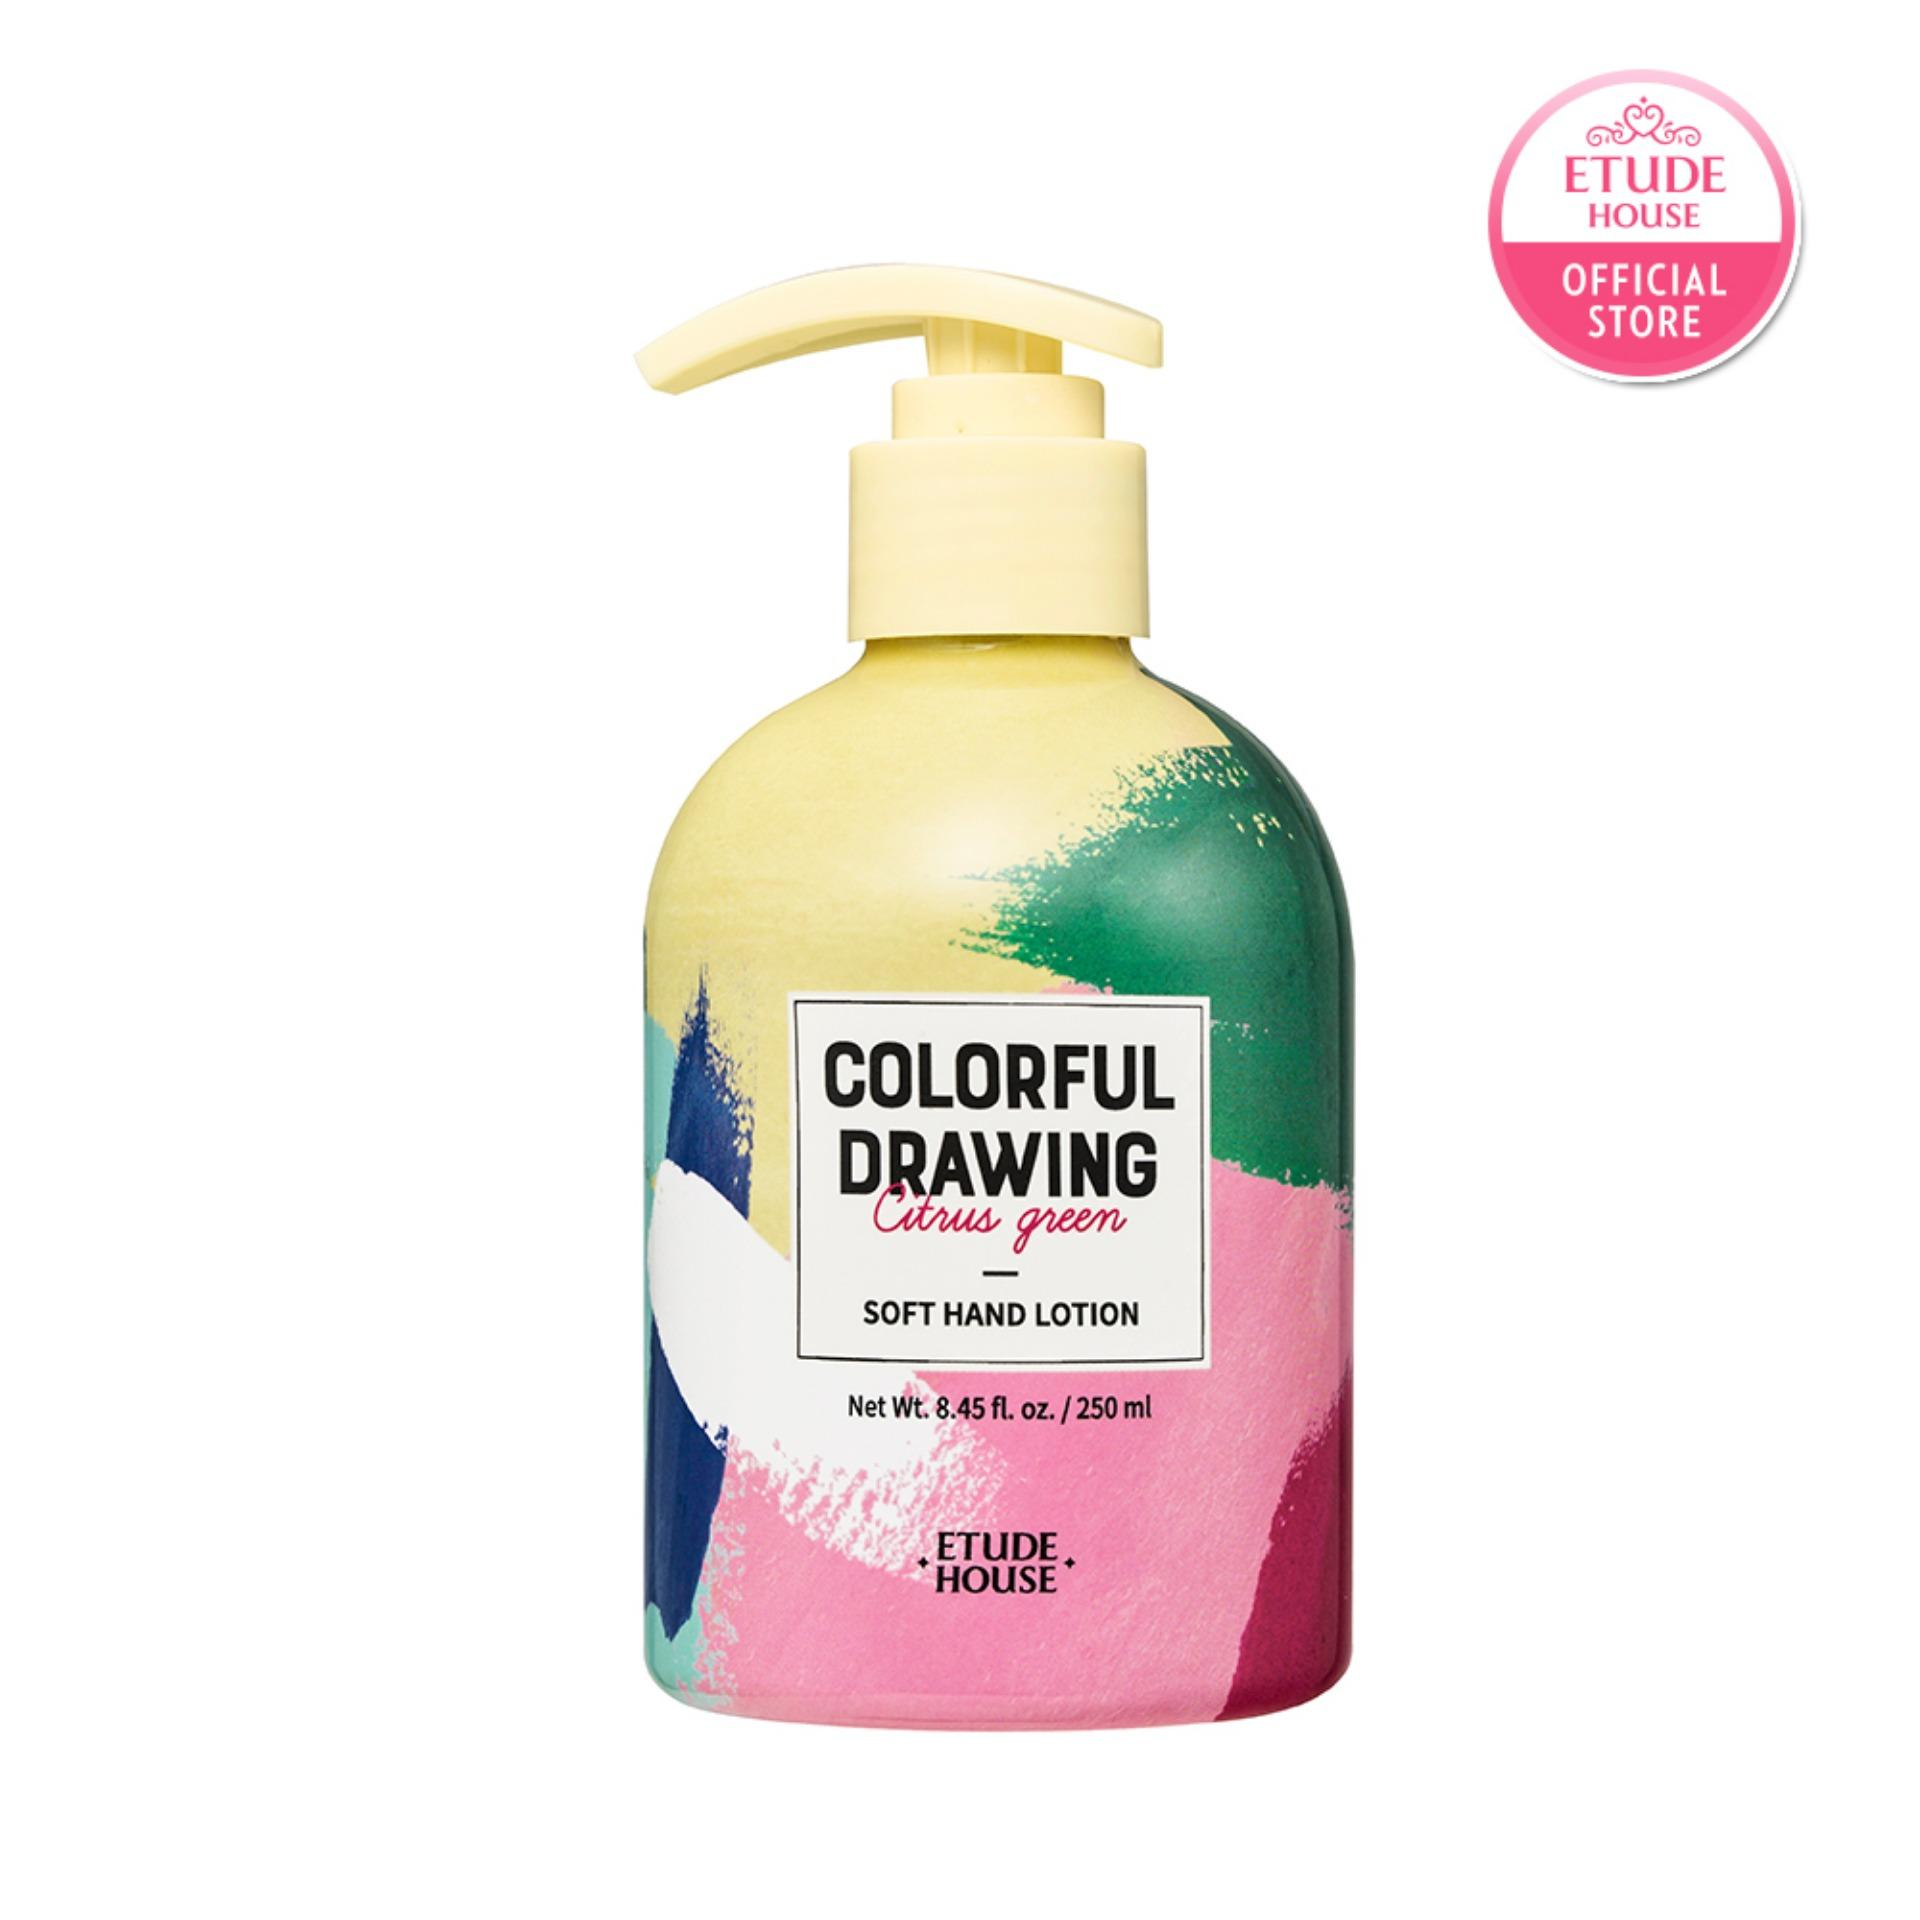 Buy Etude House Colorful Drawing Soft Hand Lotion Cheap On Singapore